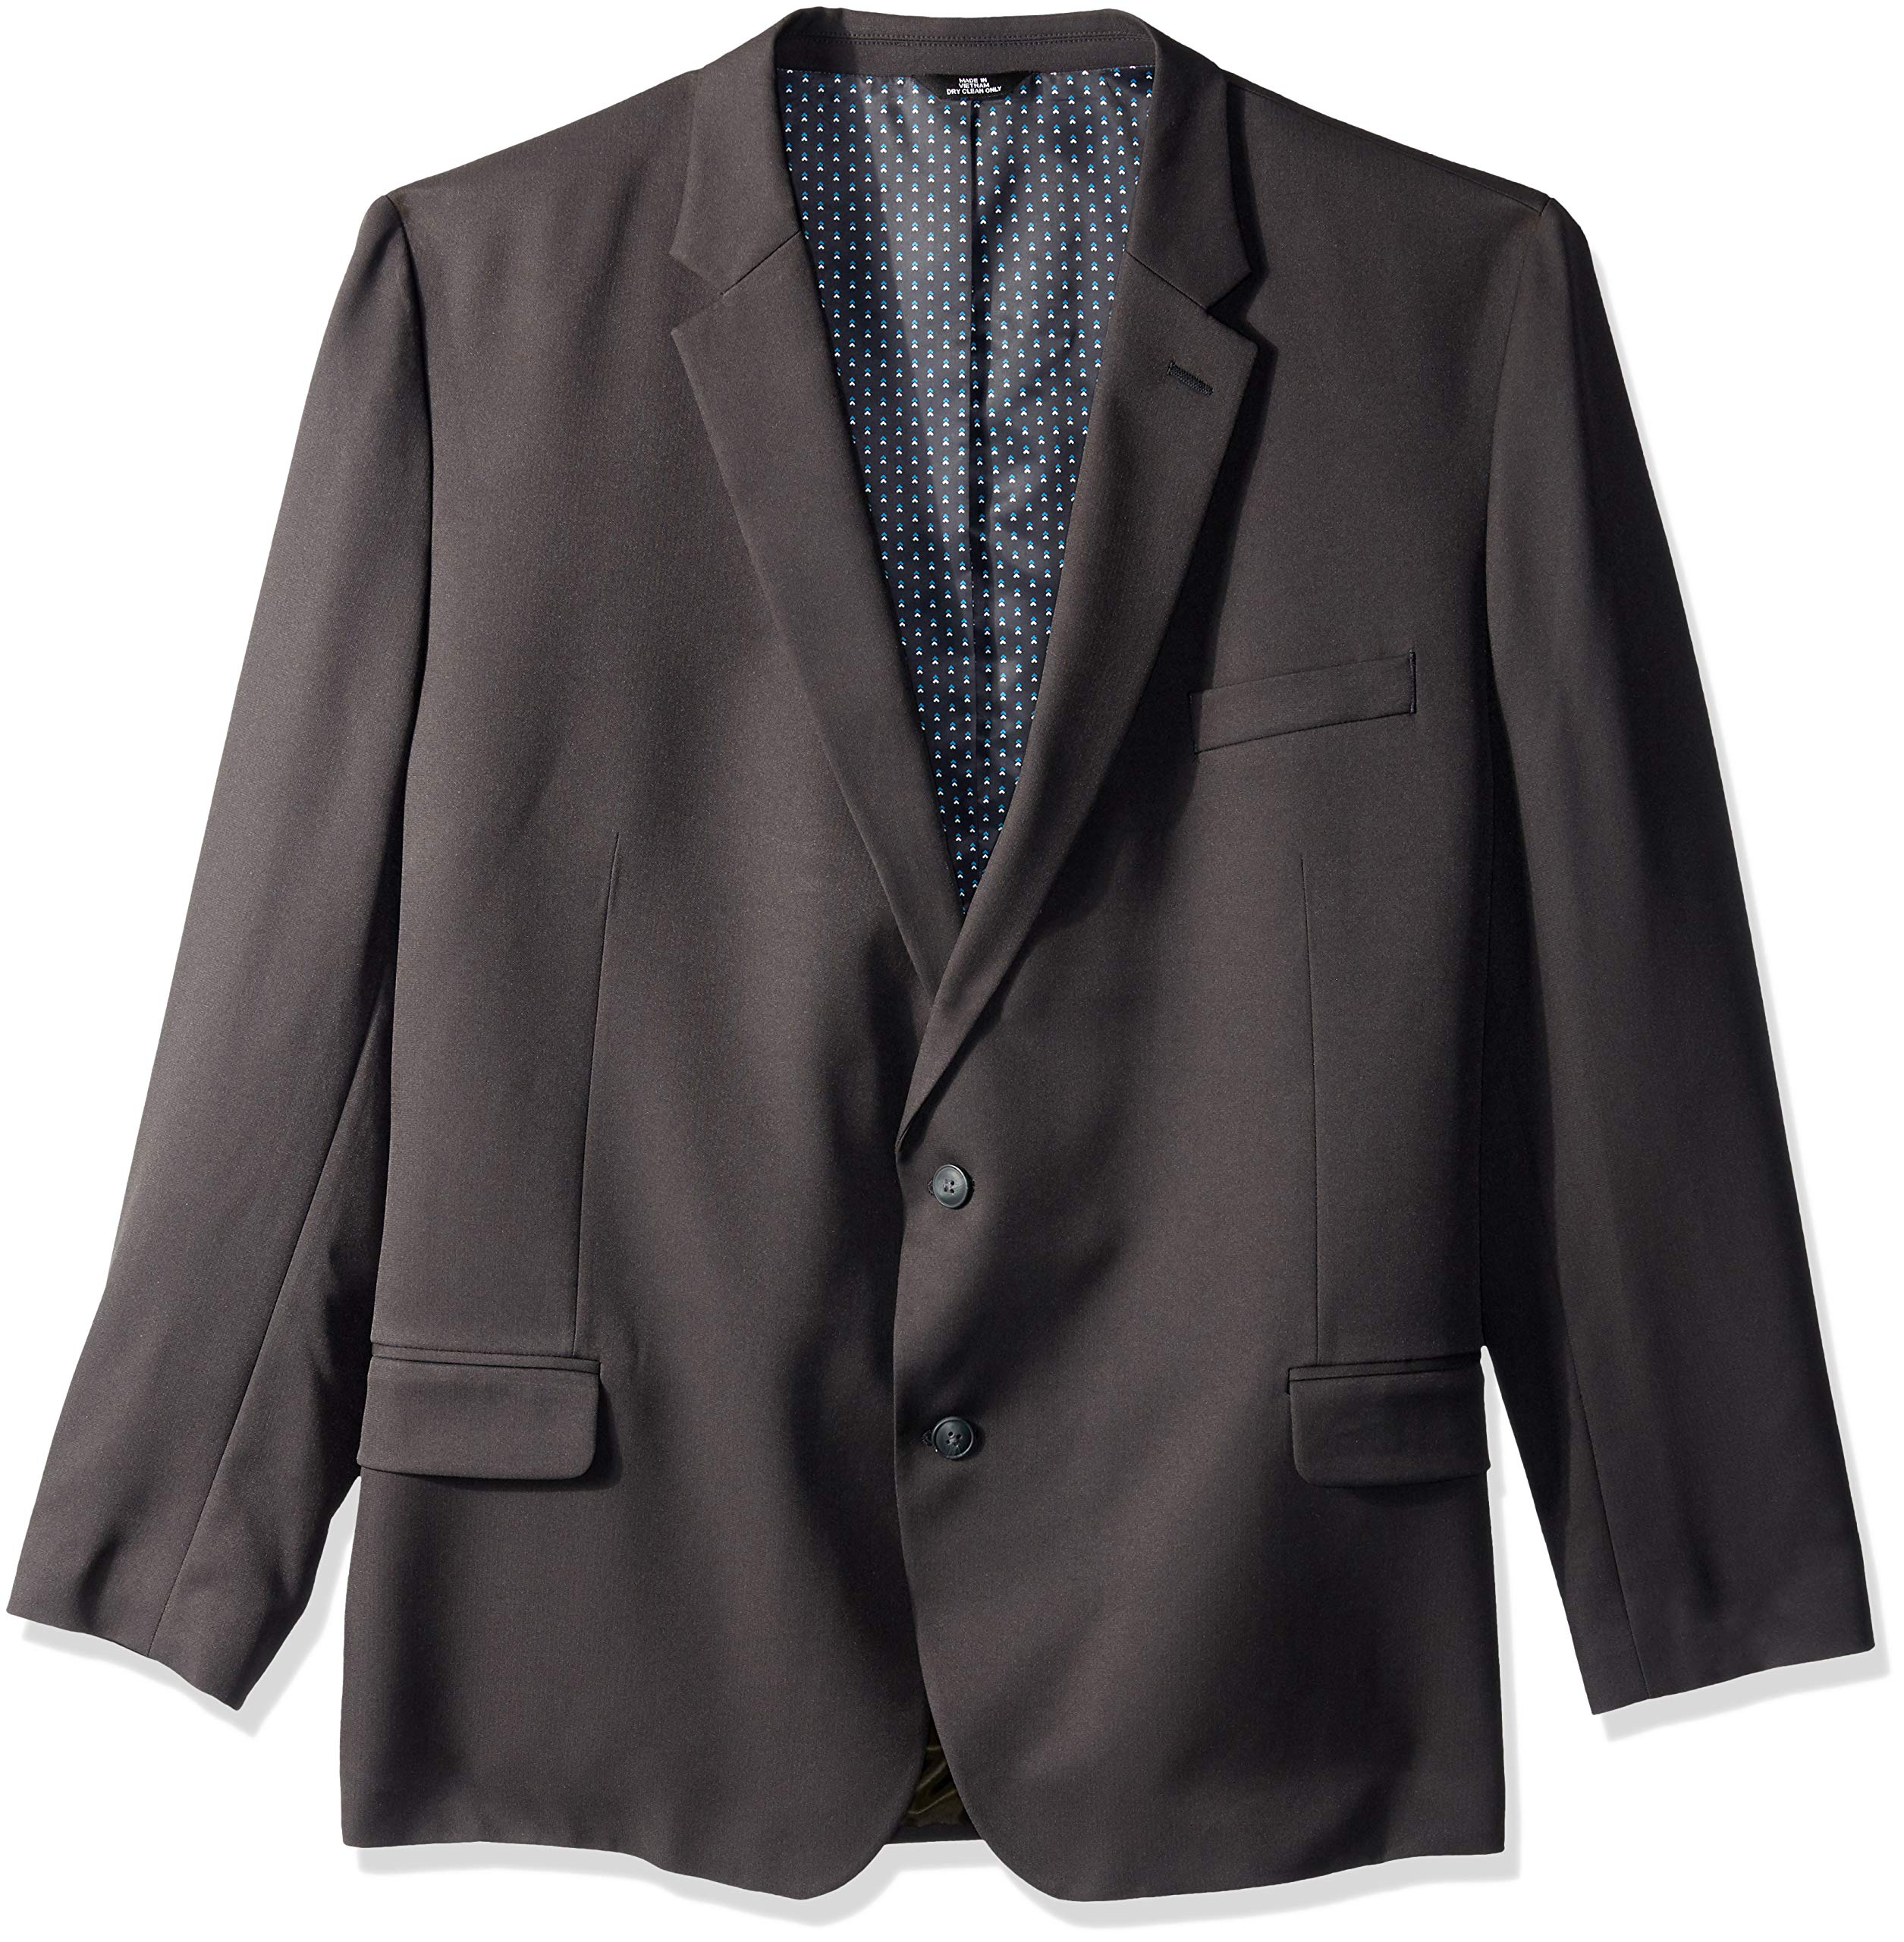 Haggar Men's Big and Tall B&T Active Series Stretch Classic Fit Suit Separate Coat, Charcoal, 52L by Haggar